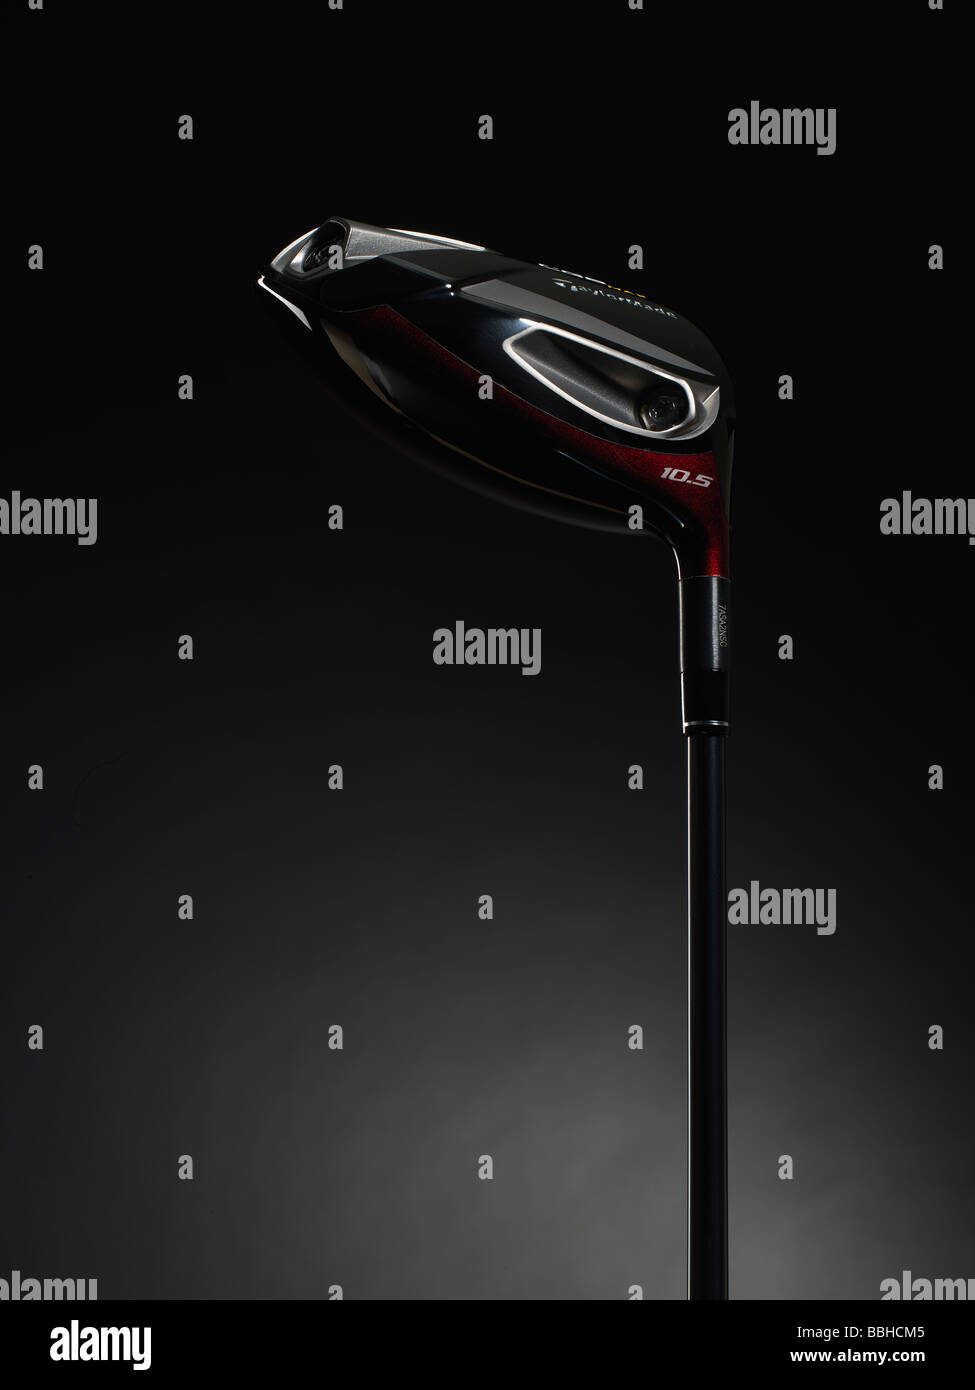 old style wooden golf clubs spotlit against a black background - Stock Image